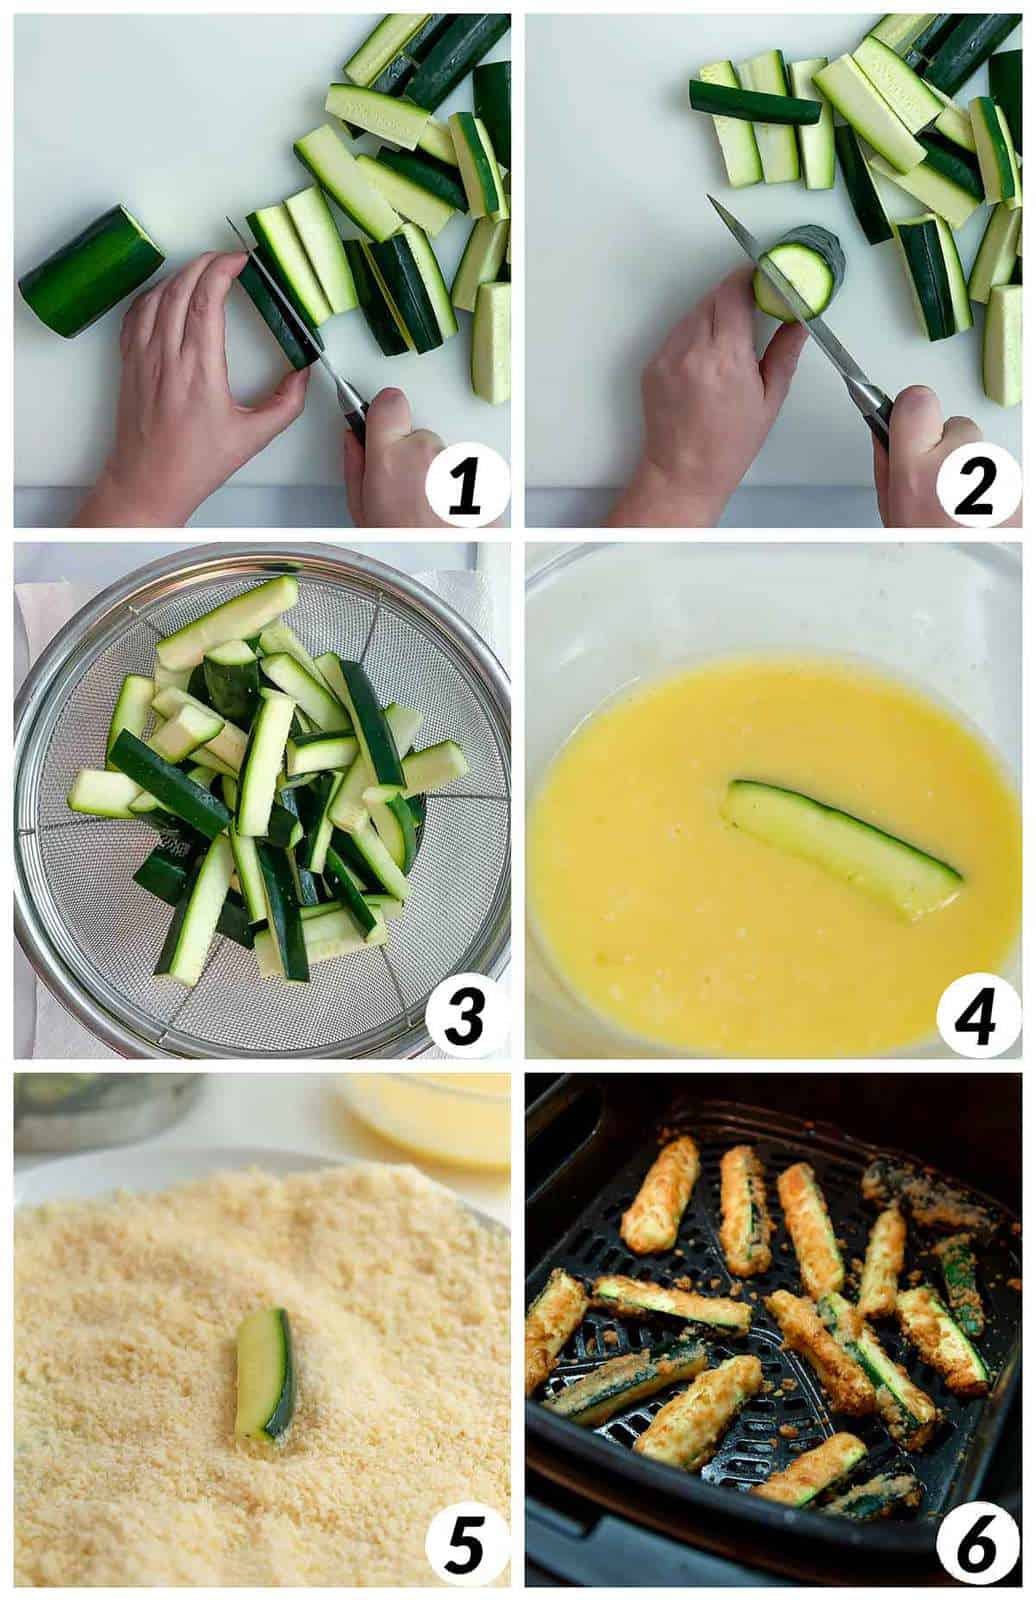 Six panel collage of process shots- cutting the zucchini into strips, coating them with egg and then cheese, and frying in the air fryer.